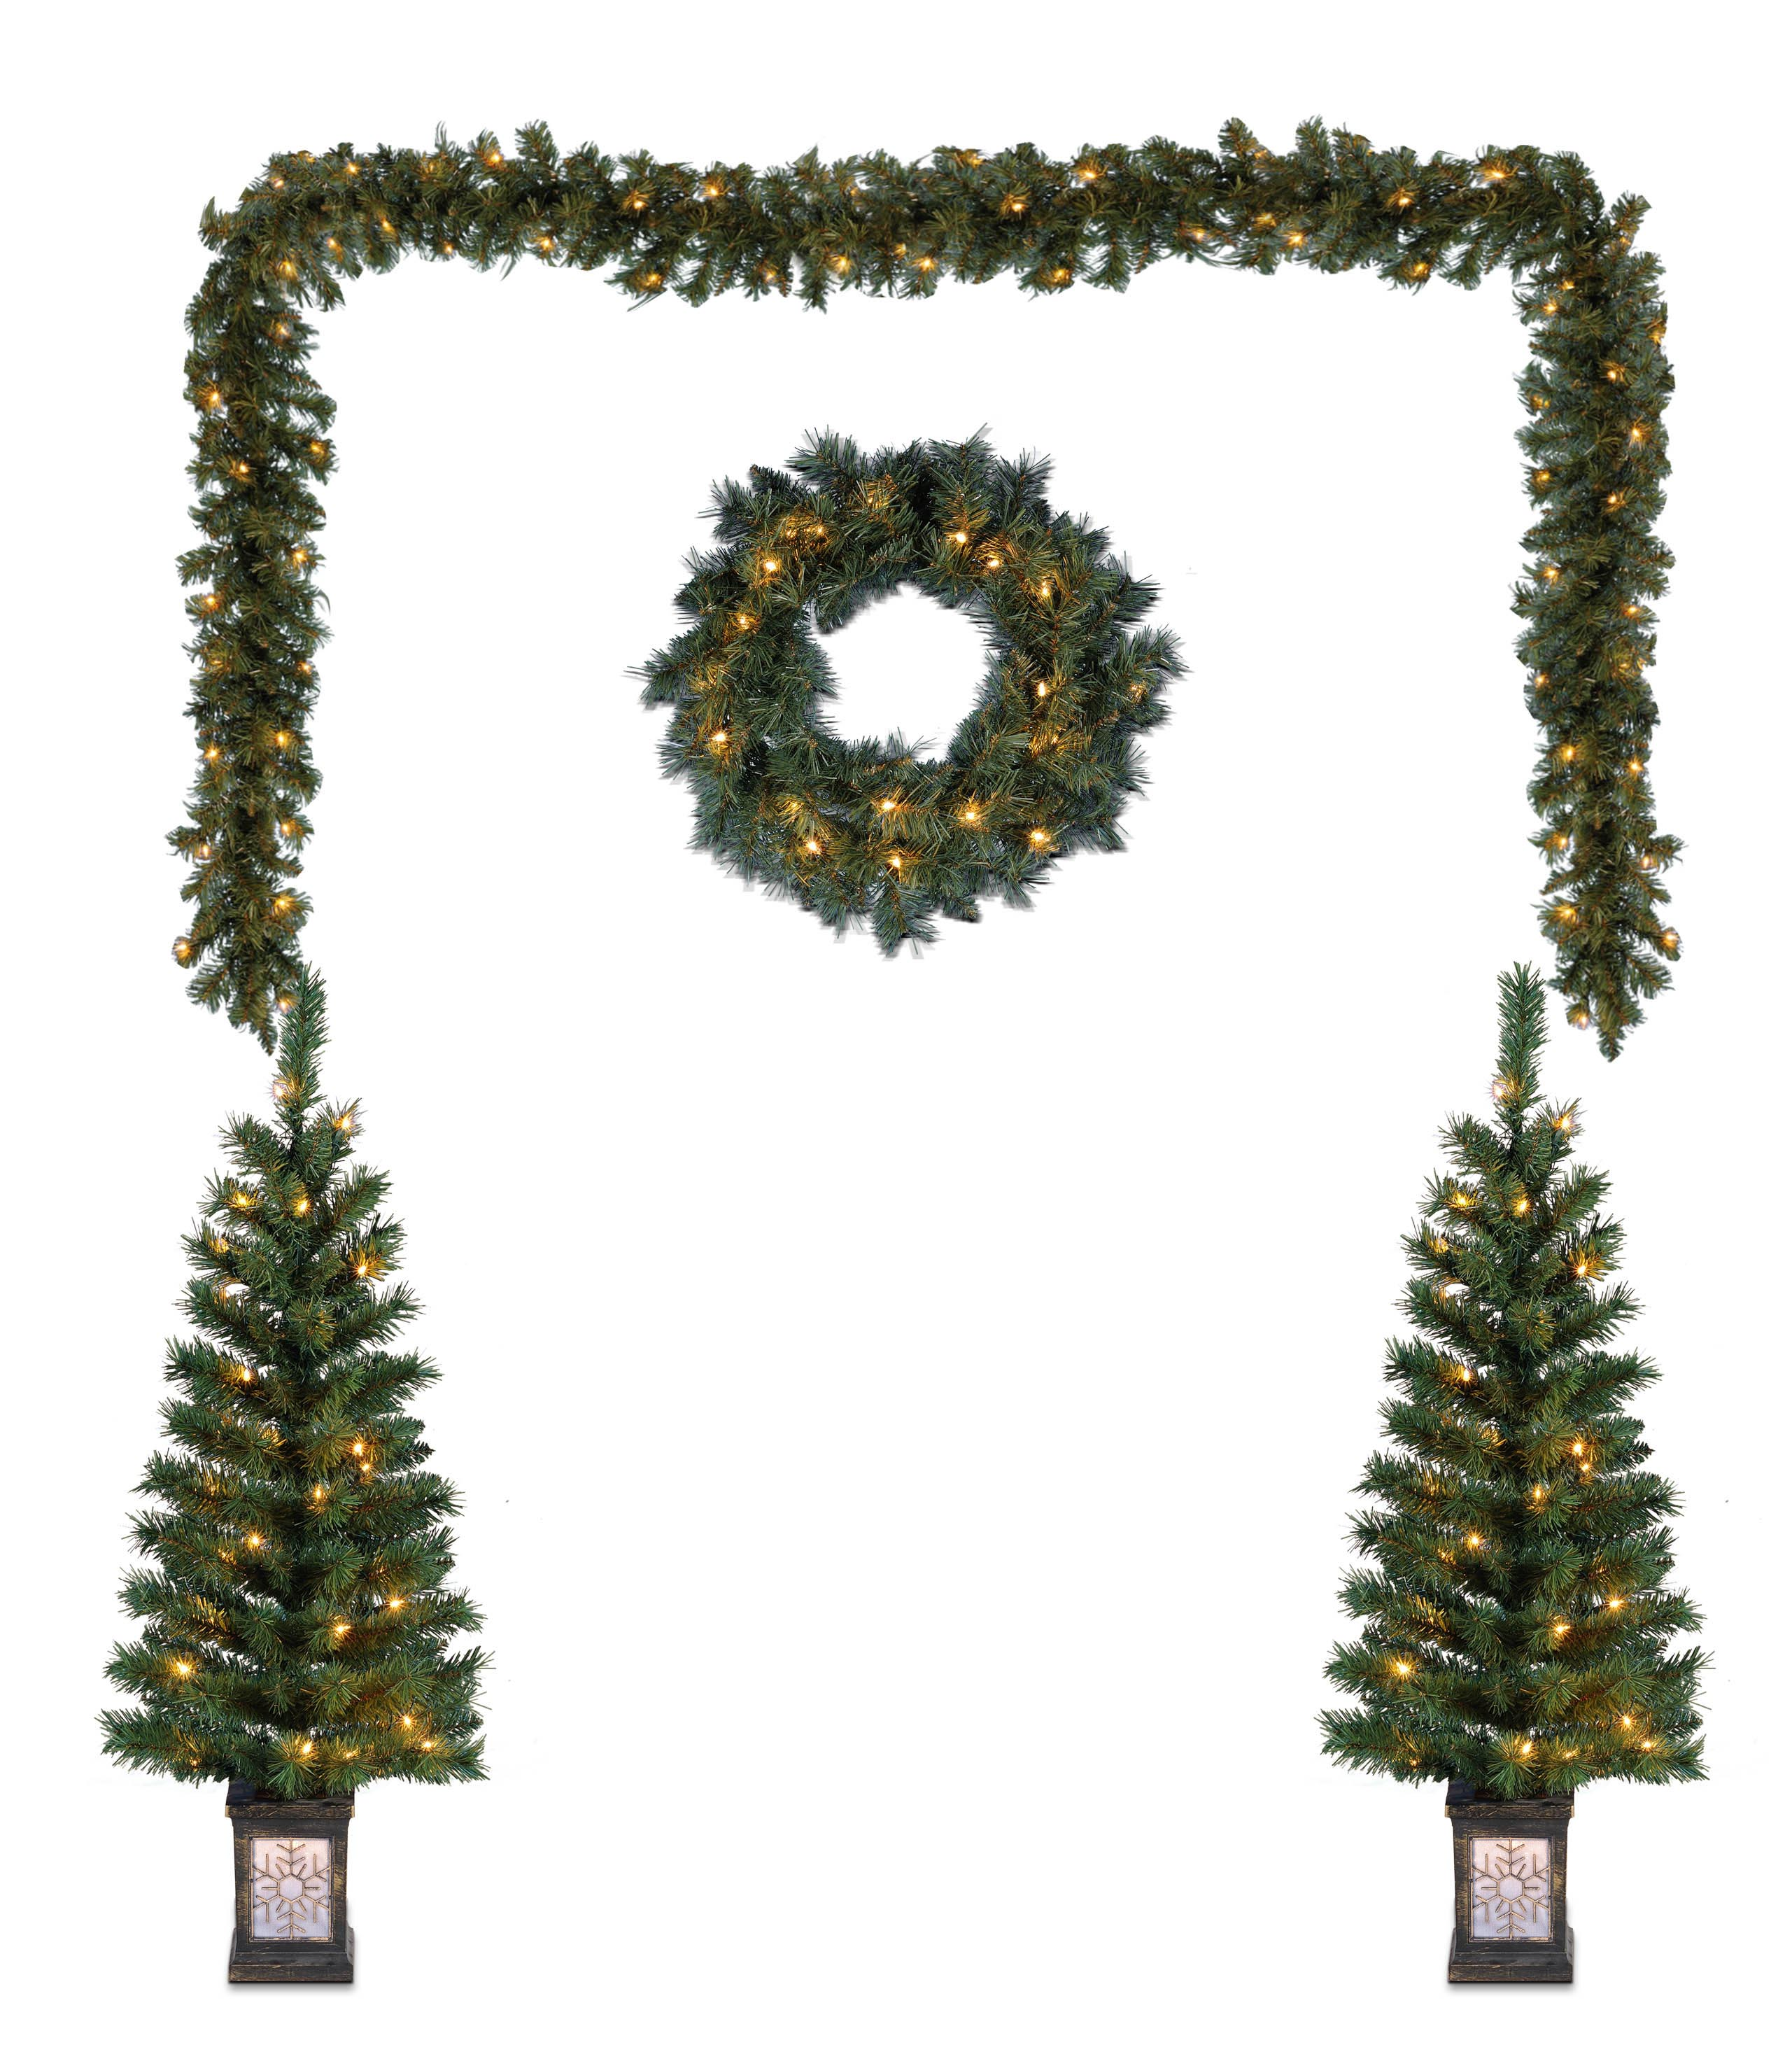 outdoor lighted christmas yard decorations pre lit tree garland wreath 5 pack 1d - Lighted Christmas Tree Yard Decorations